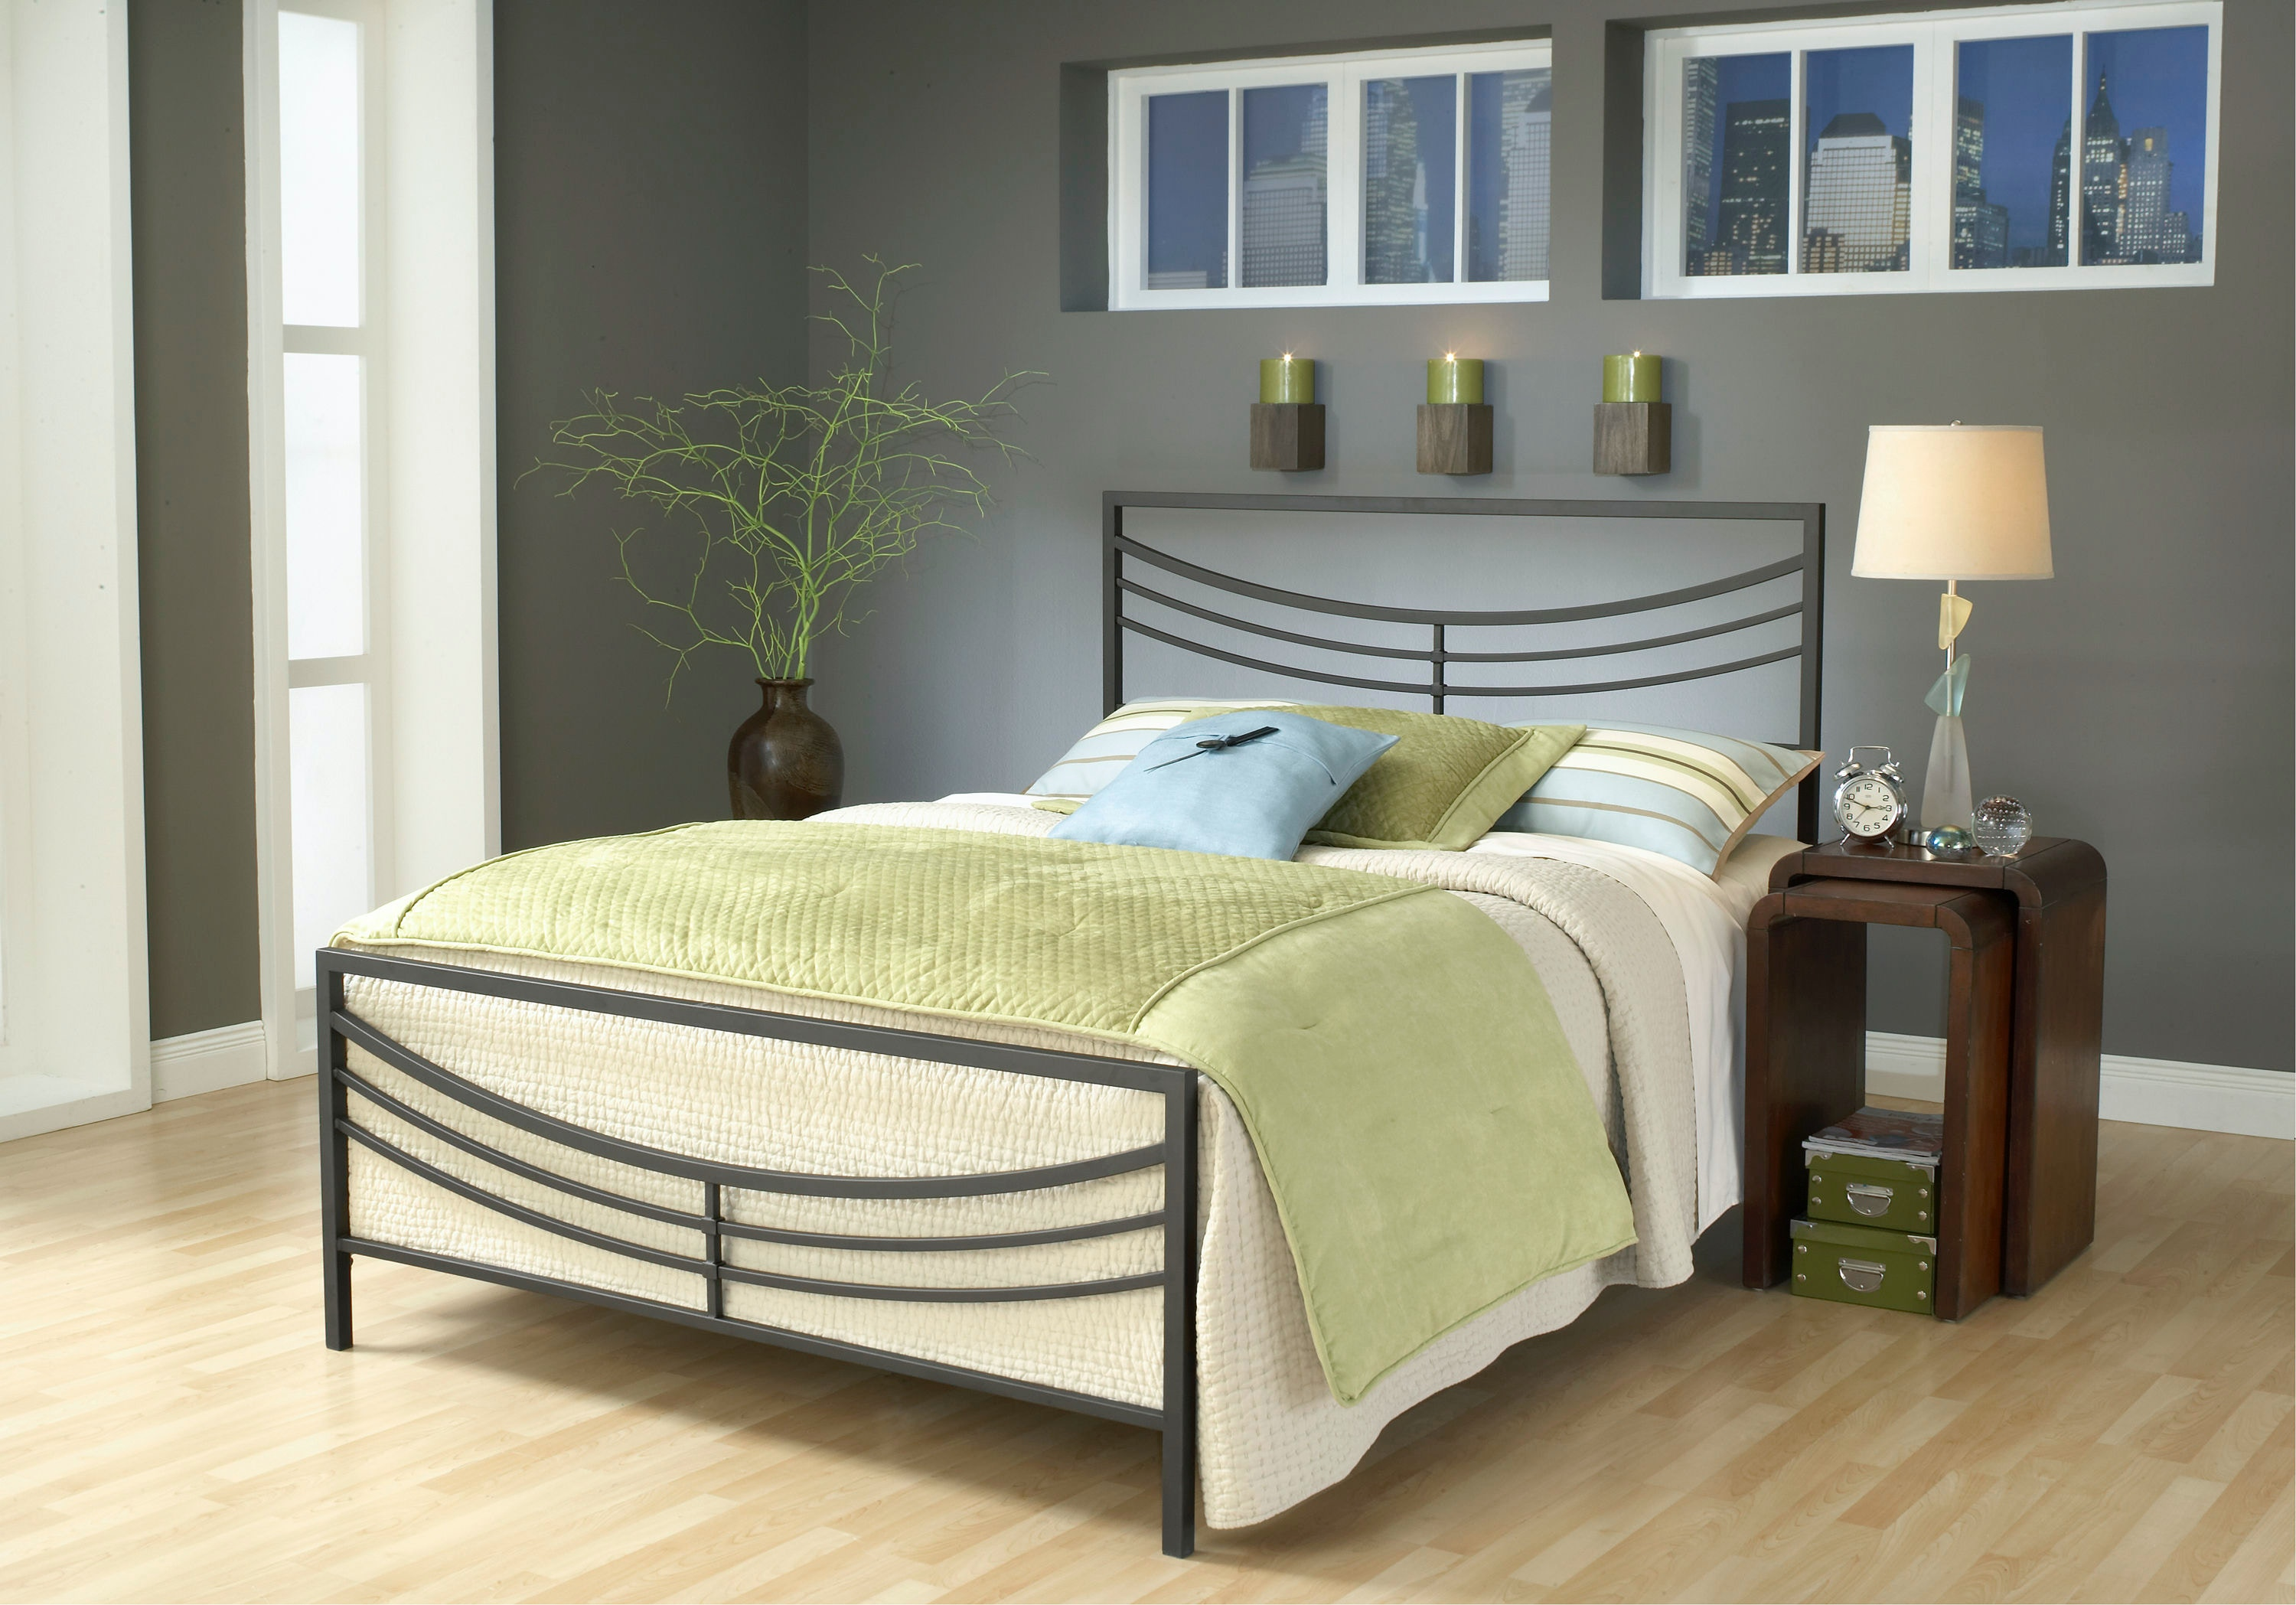 Hillsdale Furniture Kingston Bed Set   King   With Rails 1503BKR ...